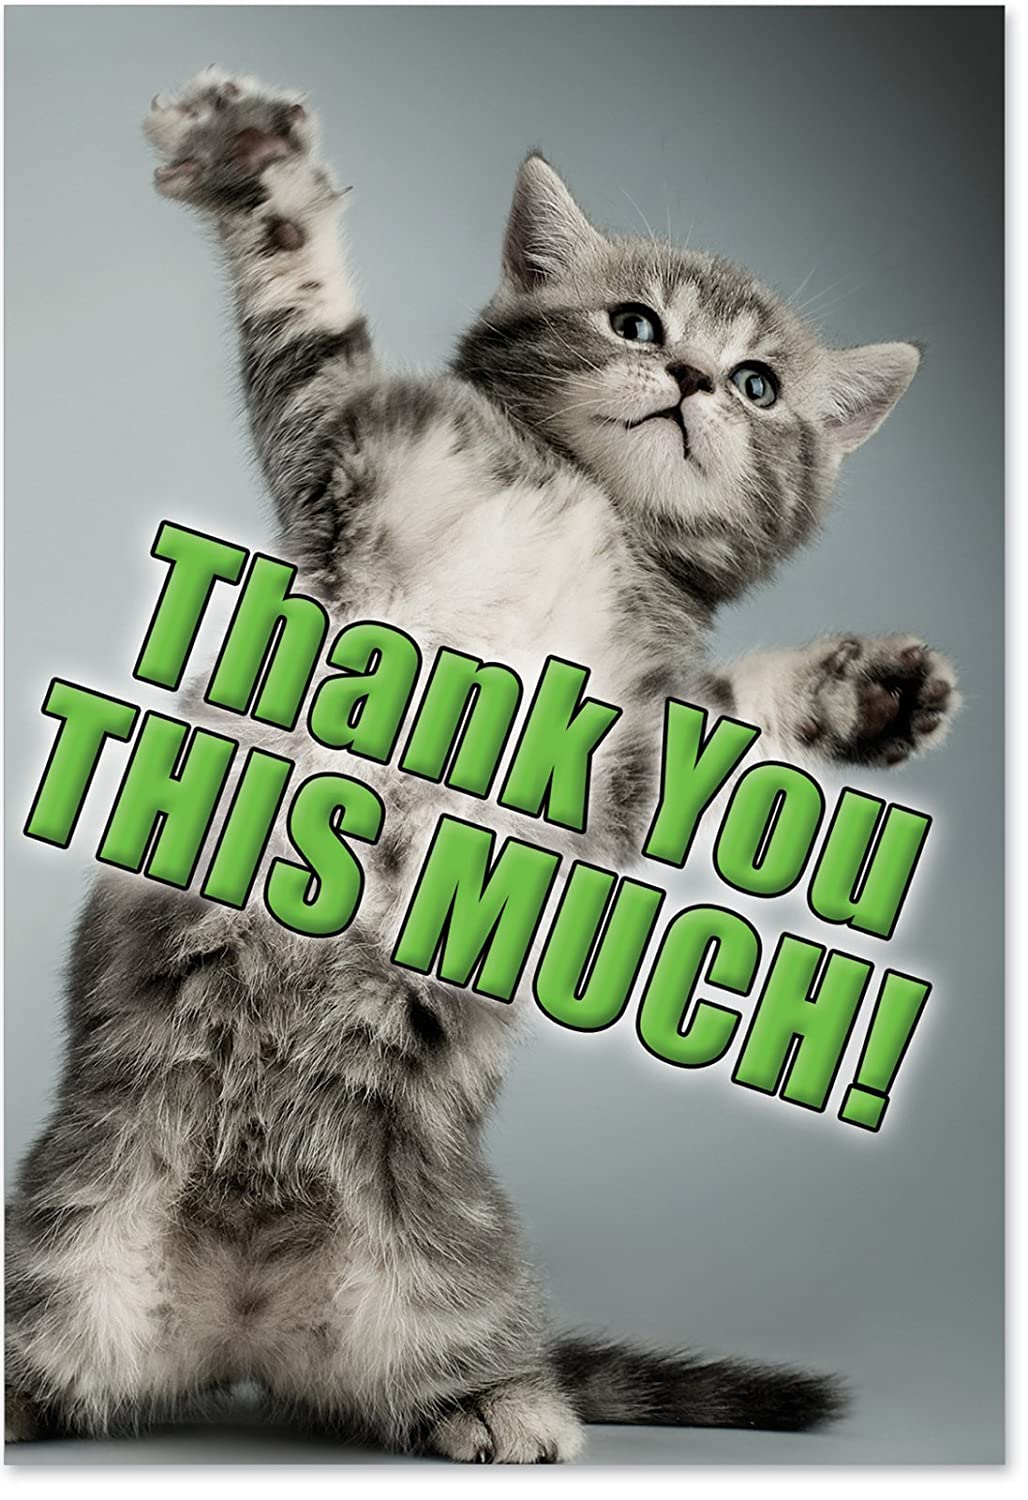 Amazon - Kitten Hilarious Thank You This Much Greeting Card - Free